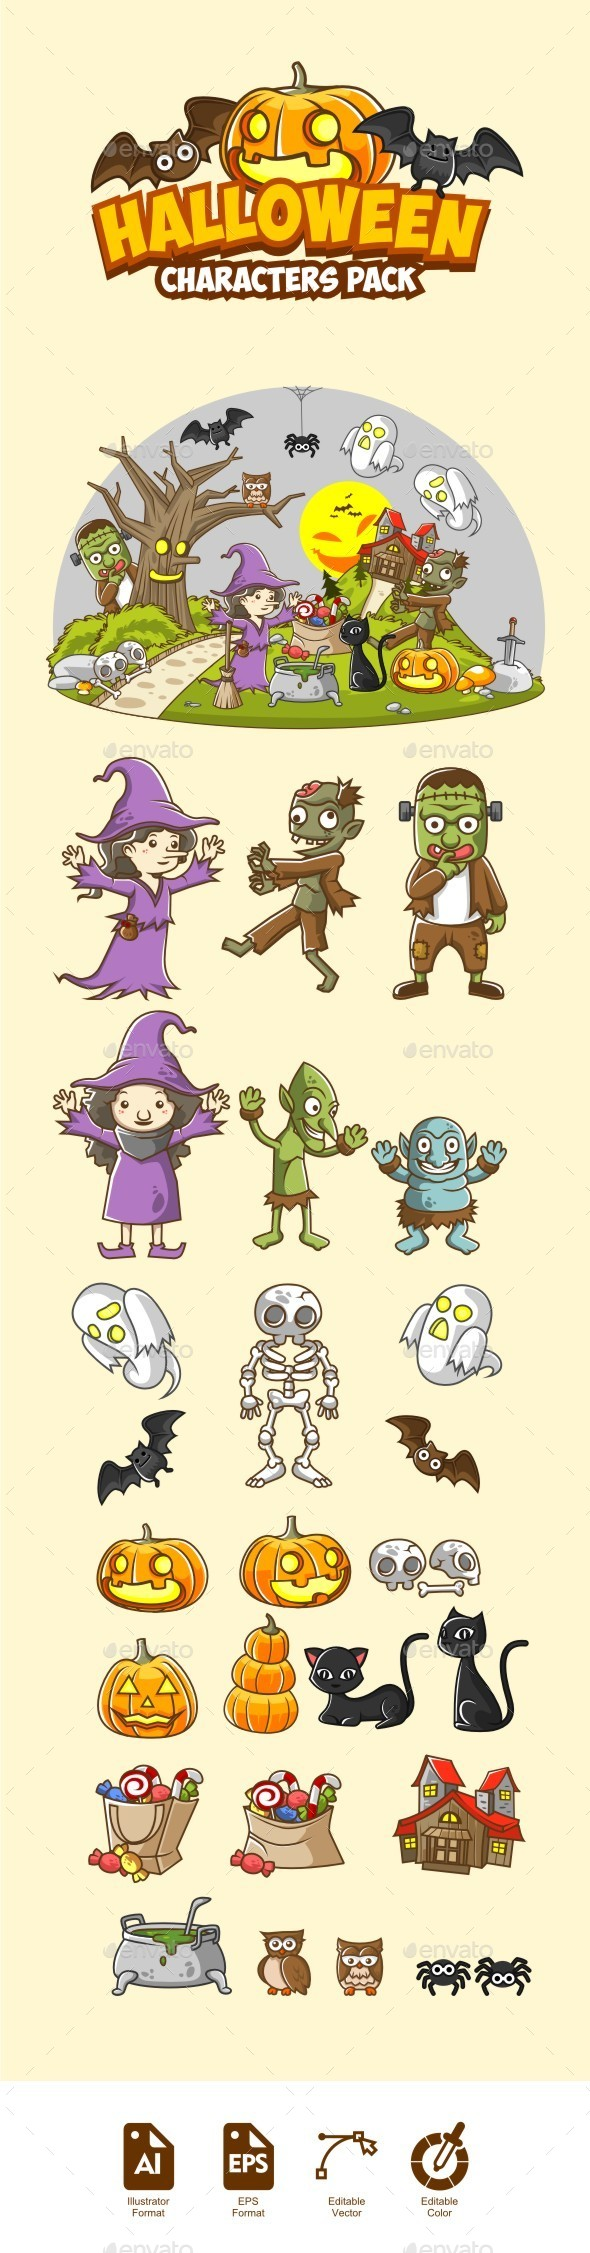 Halloween Characters Illustrations Pack